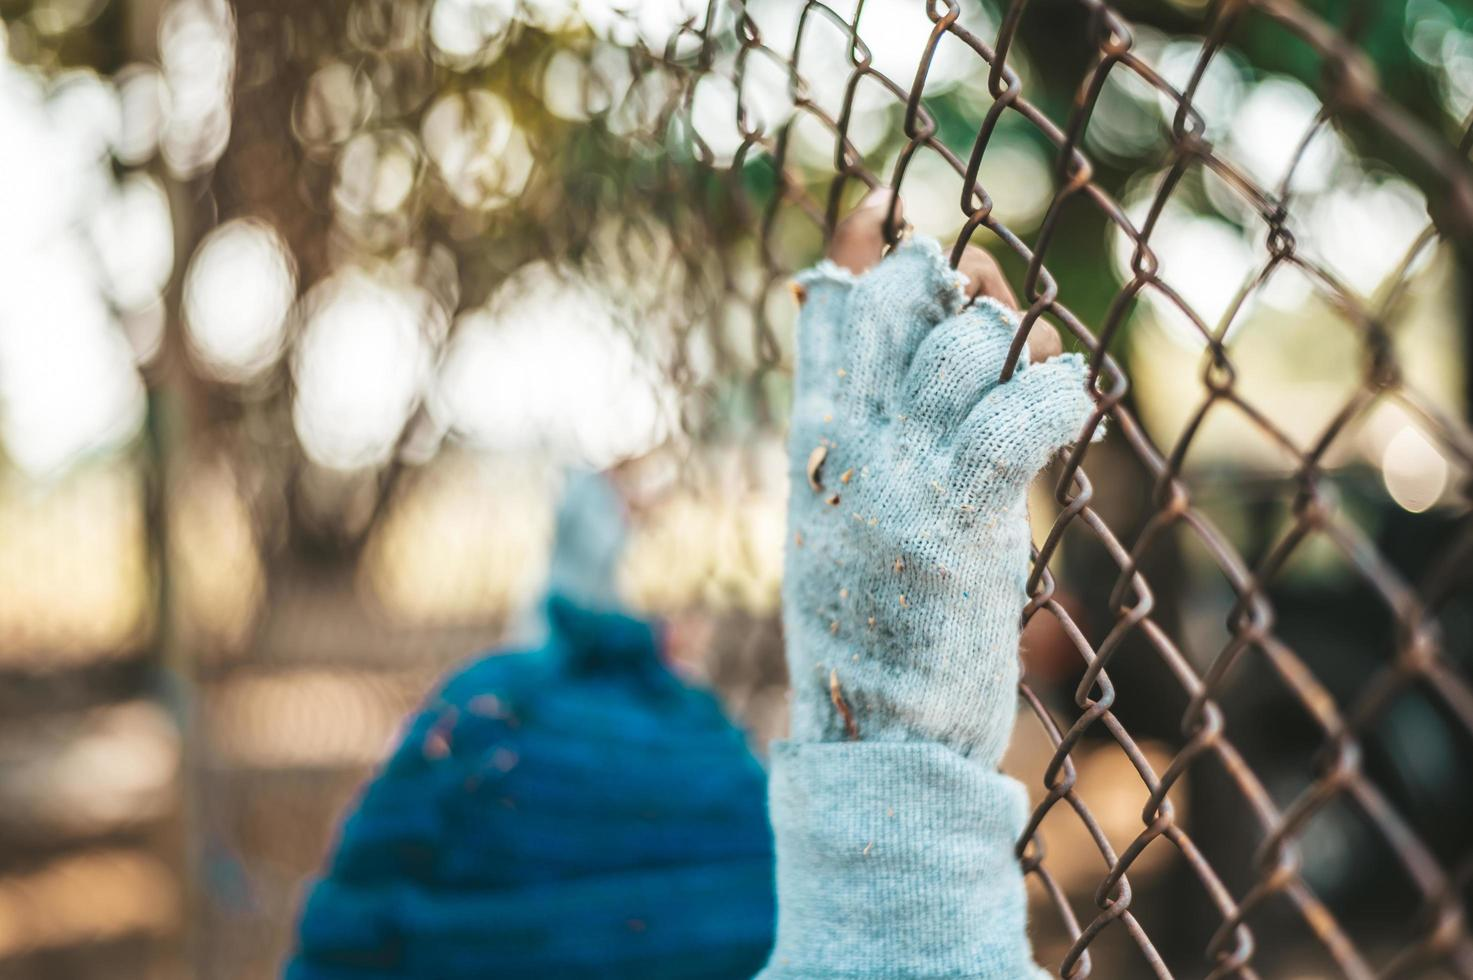 Hands grabbing a metal fence photo